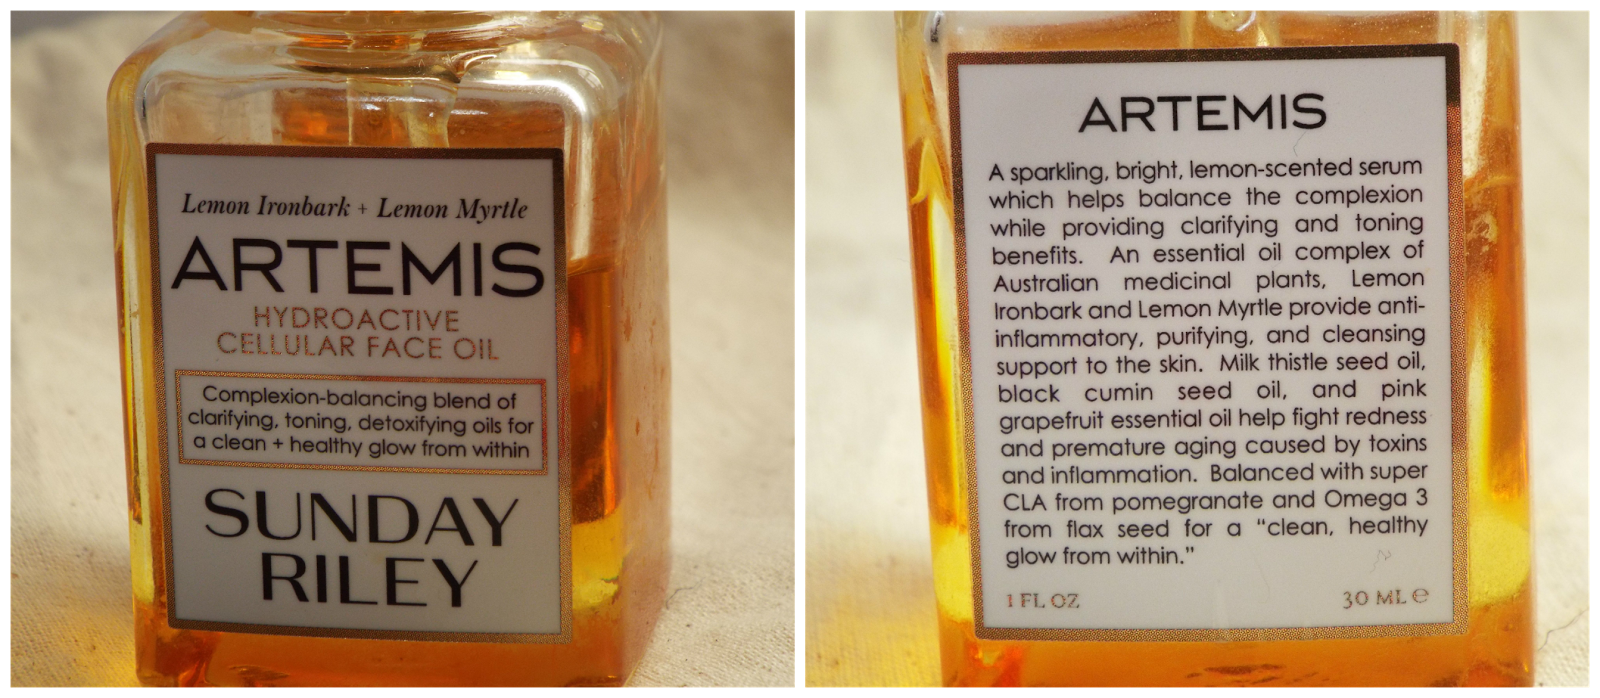 sunday riley artemis oil review